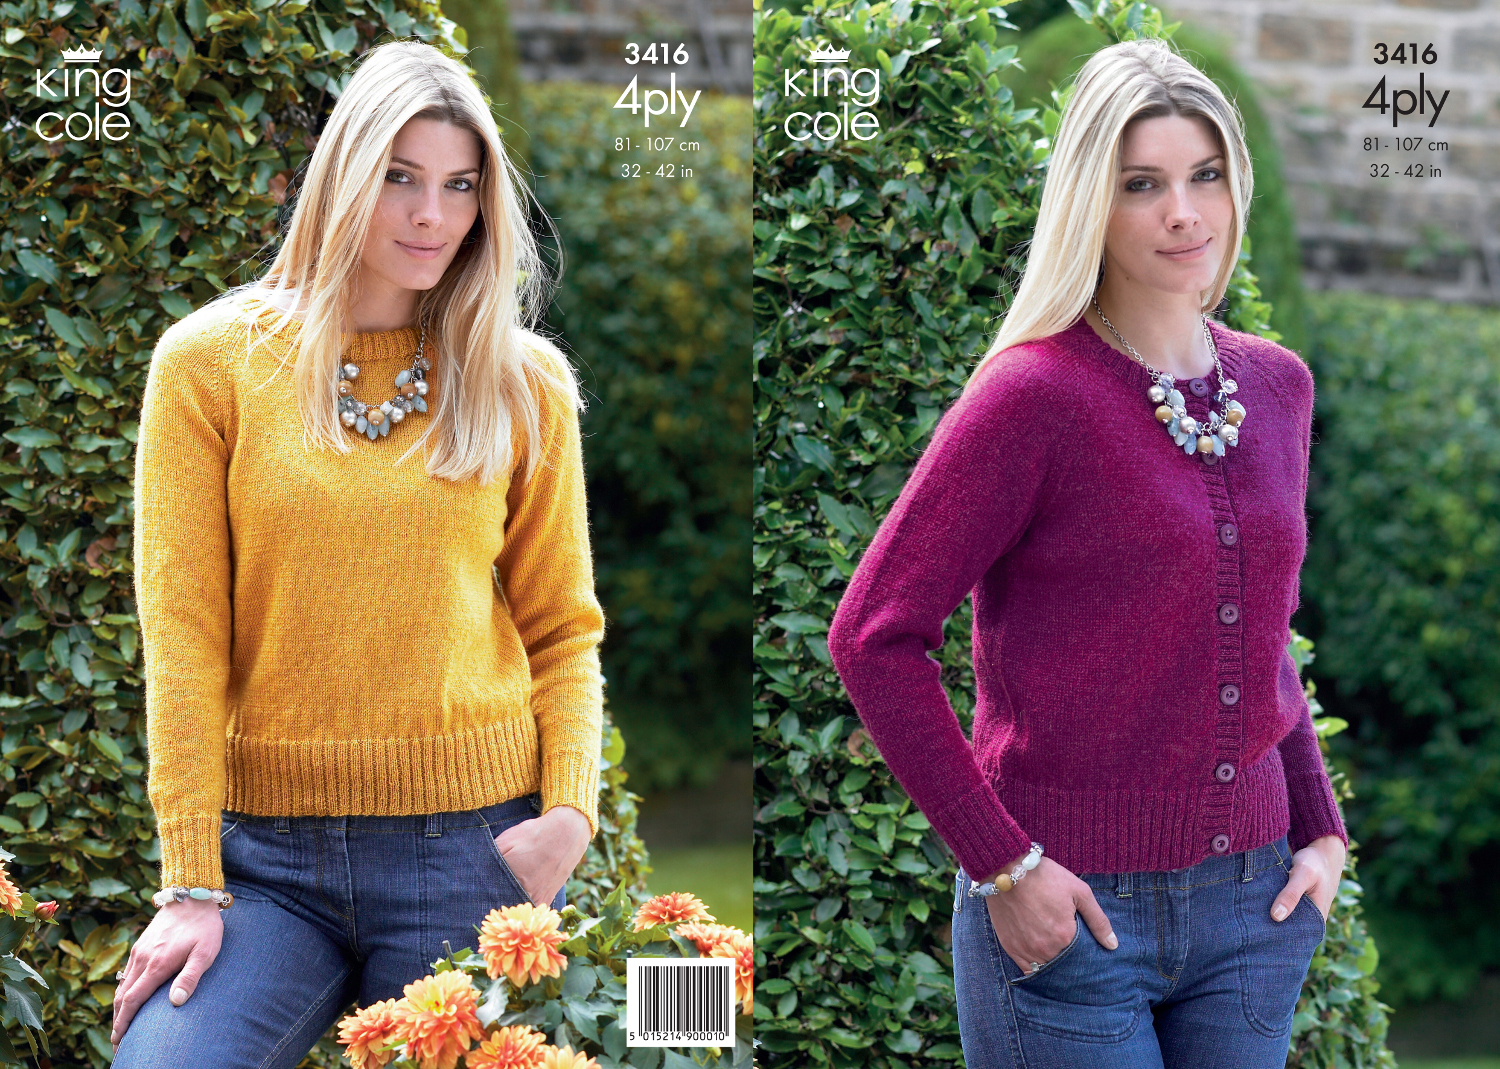 4 Ply Knitting Patterns Free Ladies : King Cole 4Ply Knitting Pattern Ladies Knitted Cardigan Sweater Womens Knit 3...